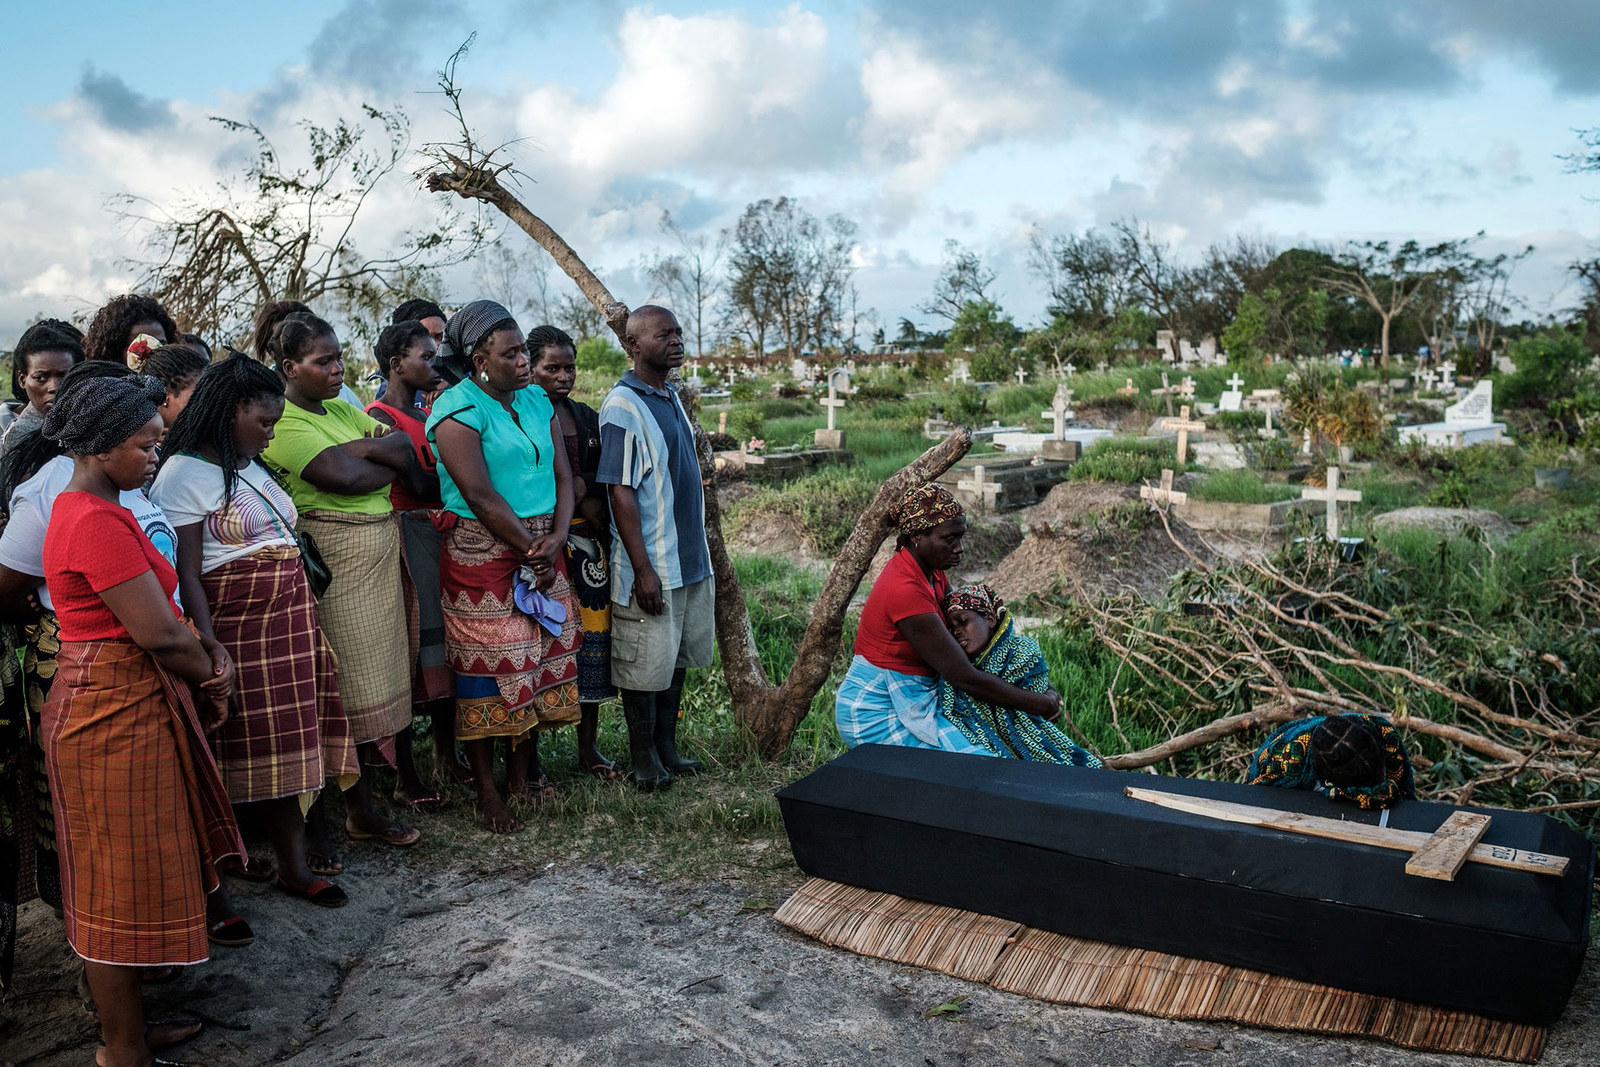 A woman mourns beside the coffin of her husband following a strong cyclone that hit Beira, Mozambique, on March 20.